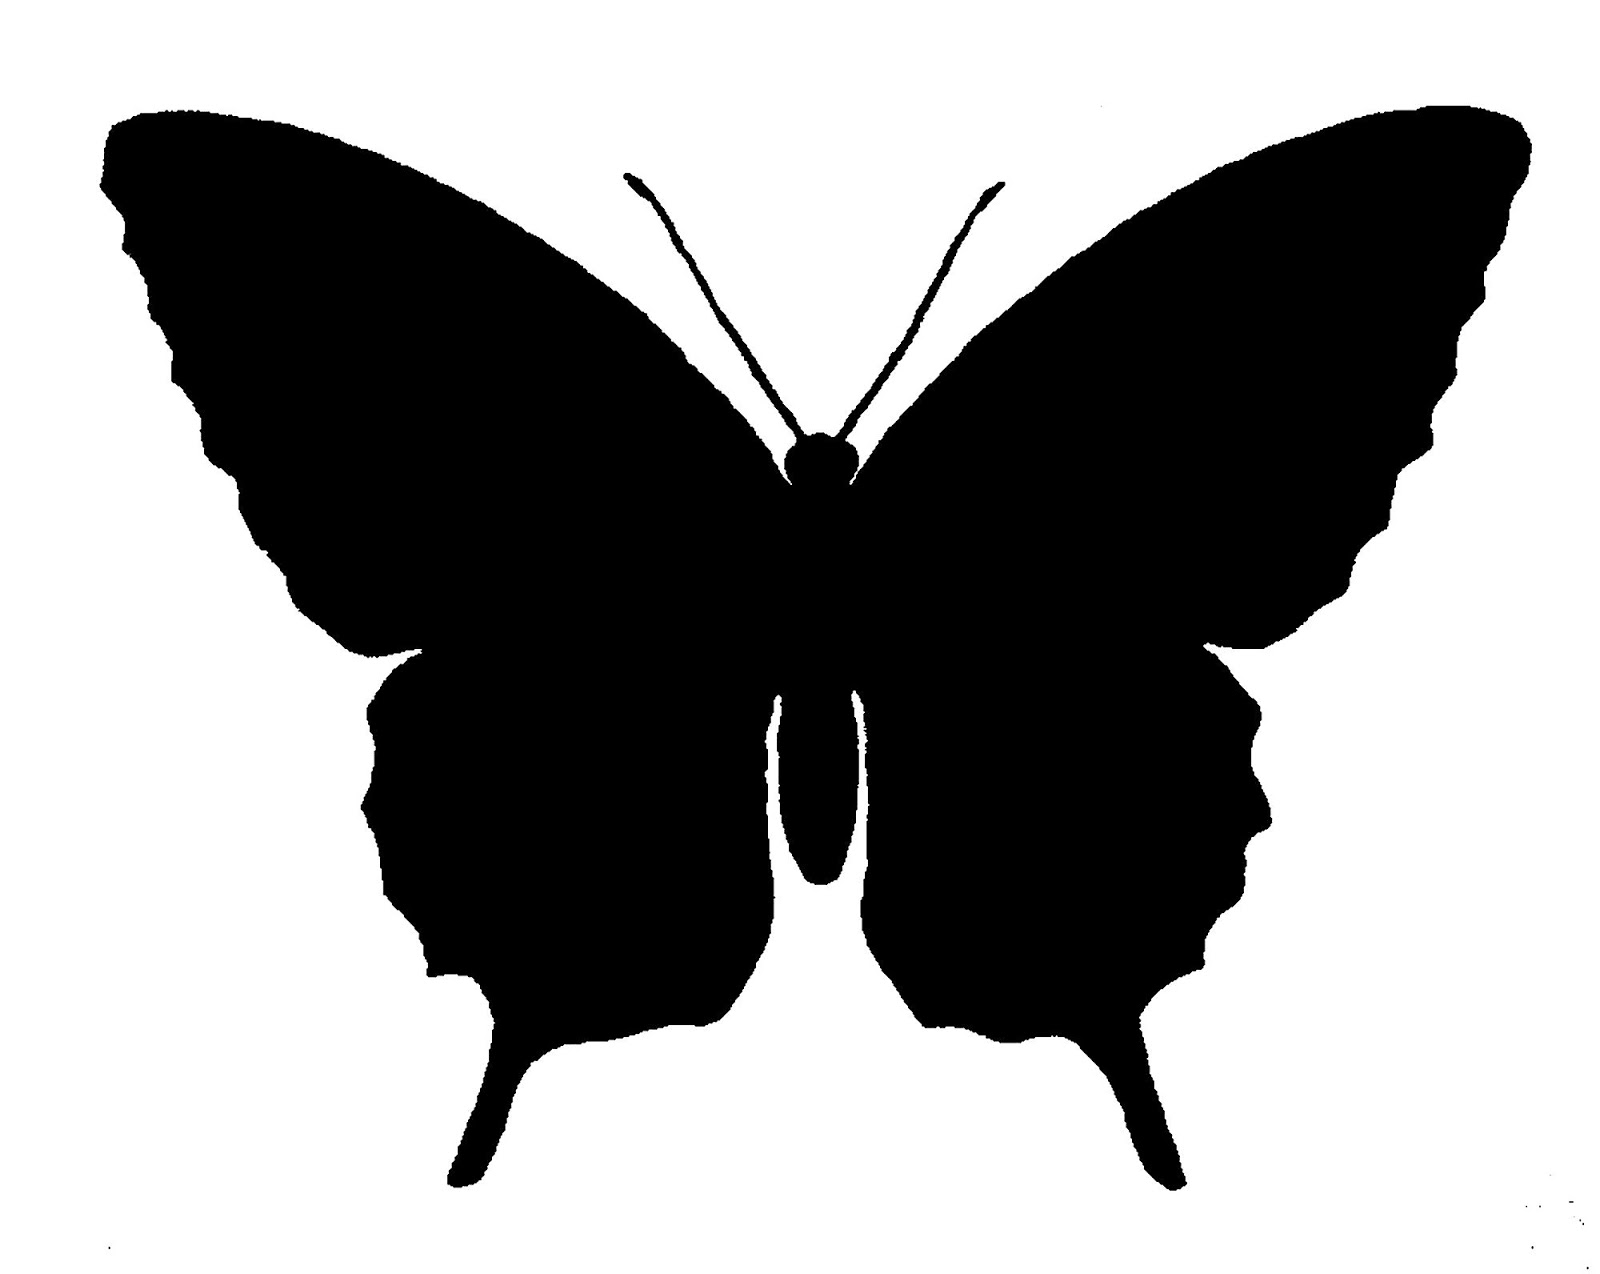 The graphics monarch free butterfly silhouette image